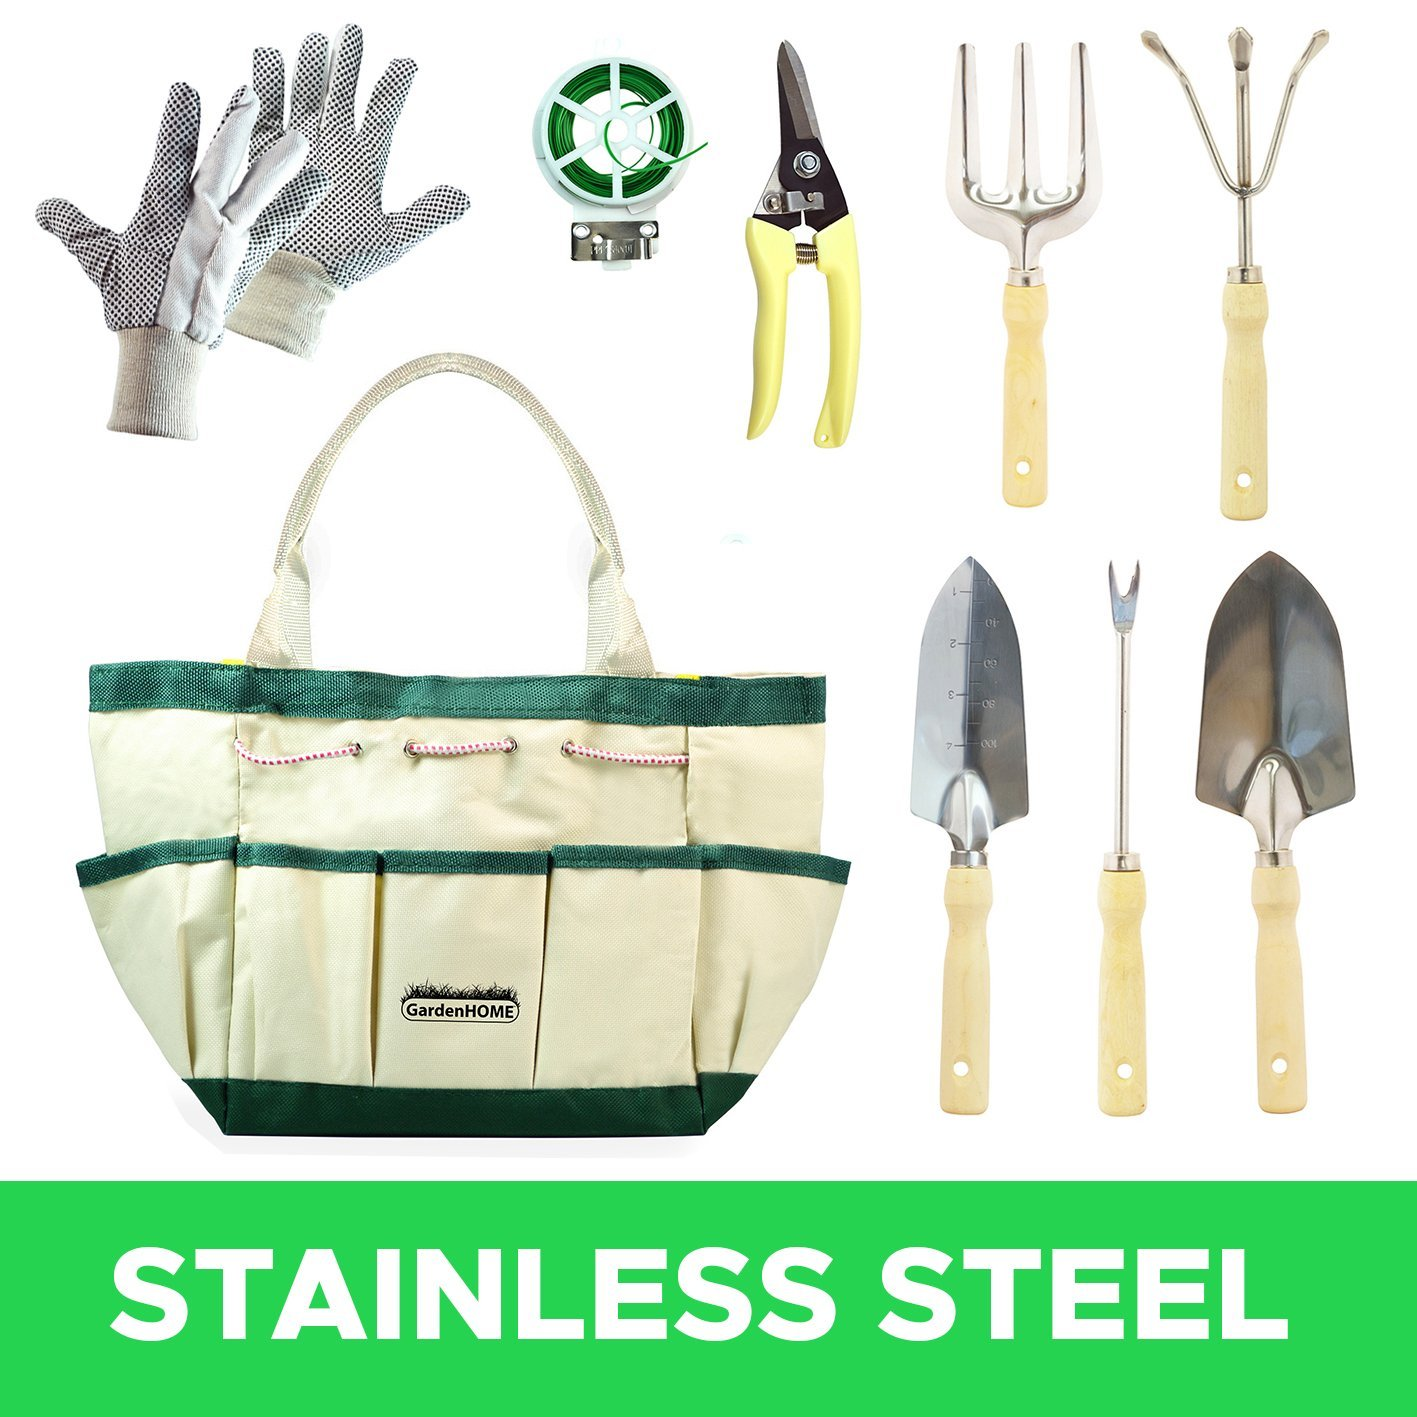 Garden Tools with Canvas Storage Tool Set Tote and Gardening Gloves(9 Pieces) by GardenHOME